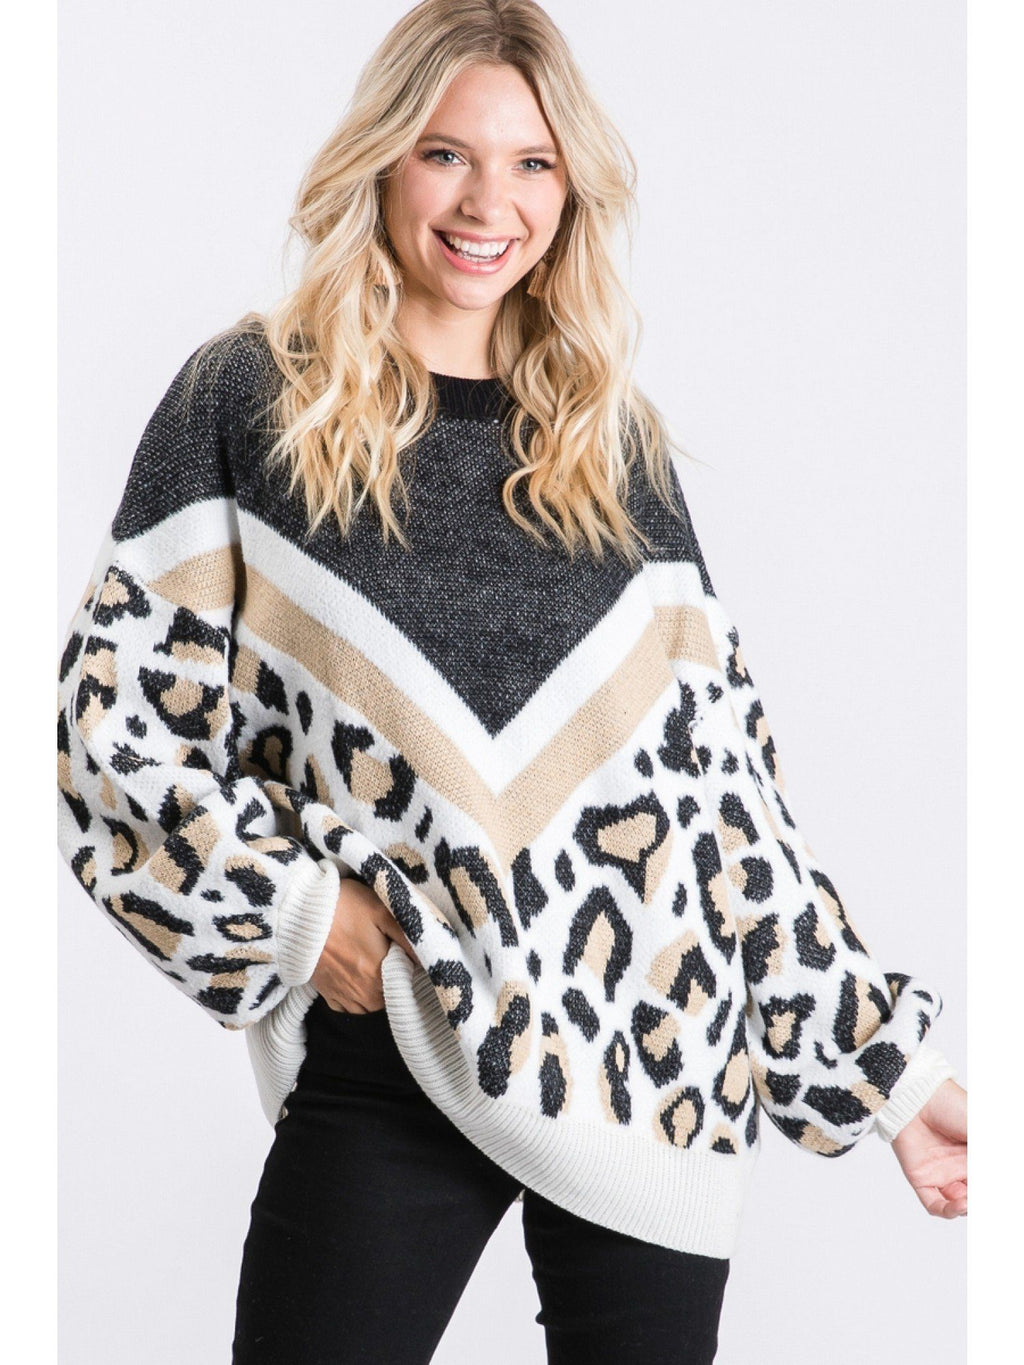 Limitless Options Black Leopard Block Sweater - Caroline Hill